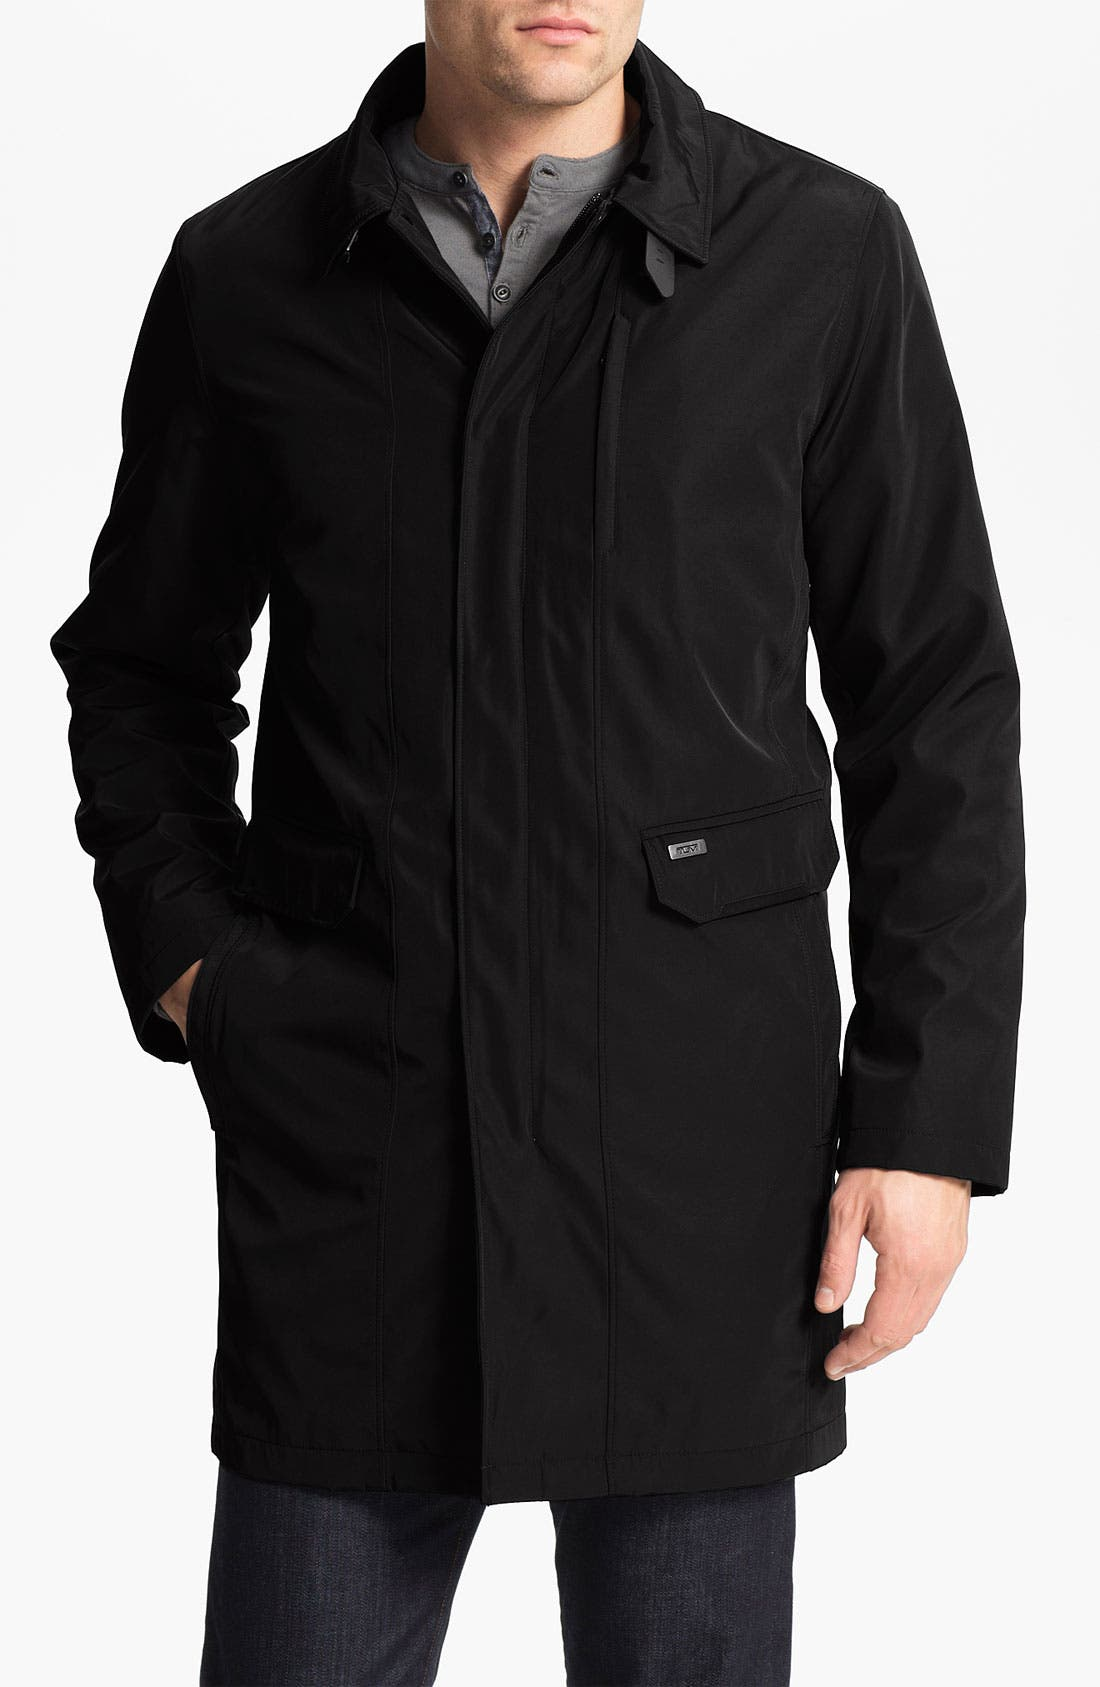 Alternate Image 1 Selected - Tumi 'Commuter' Jacket